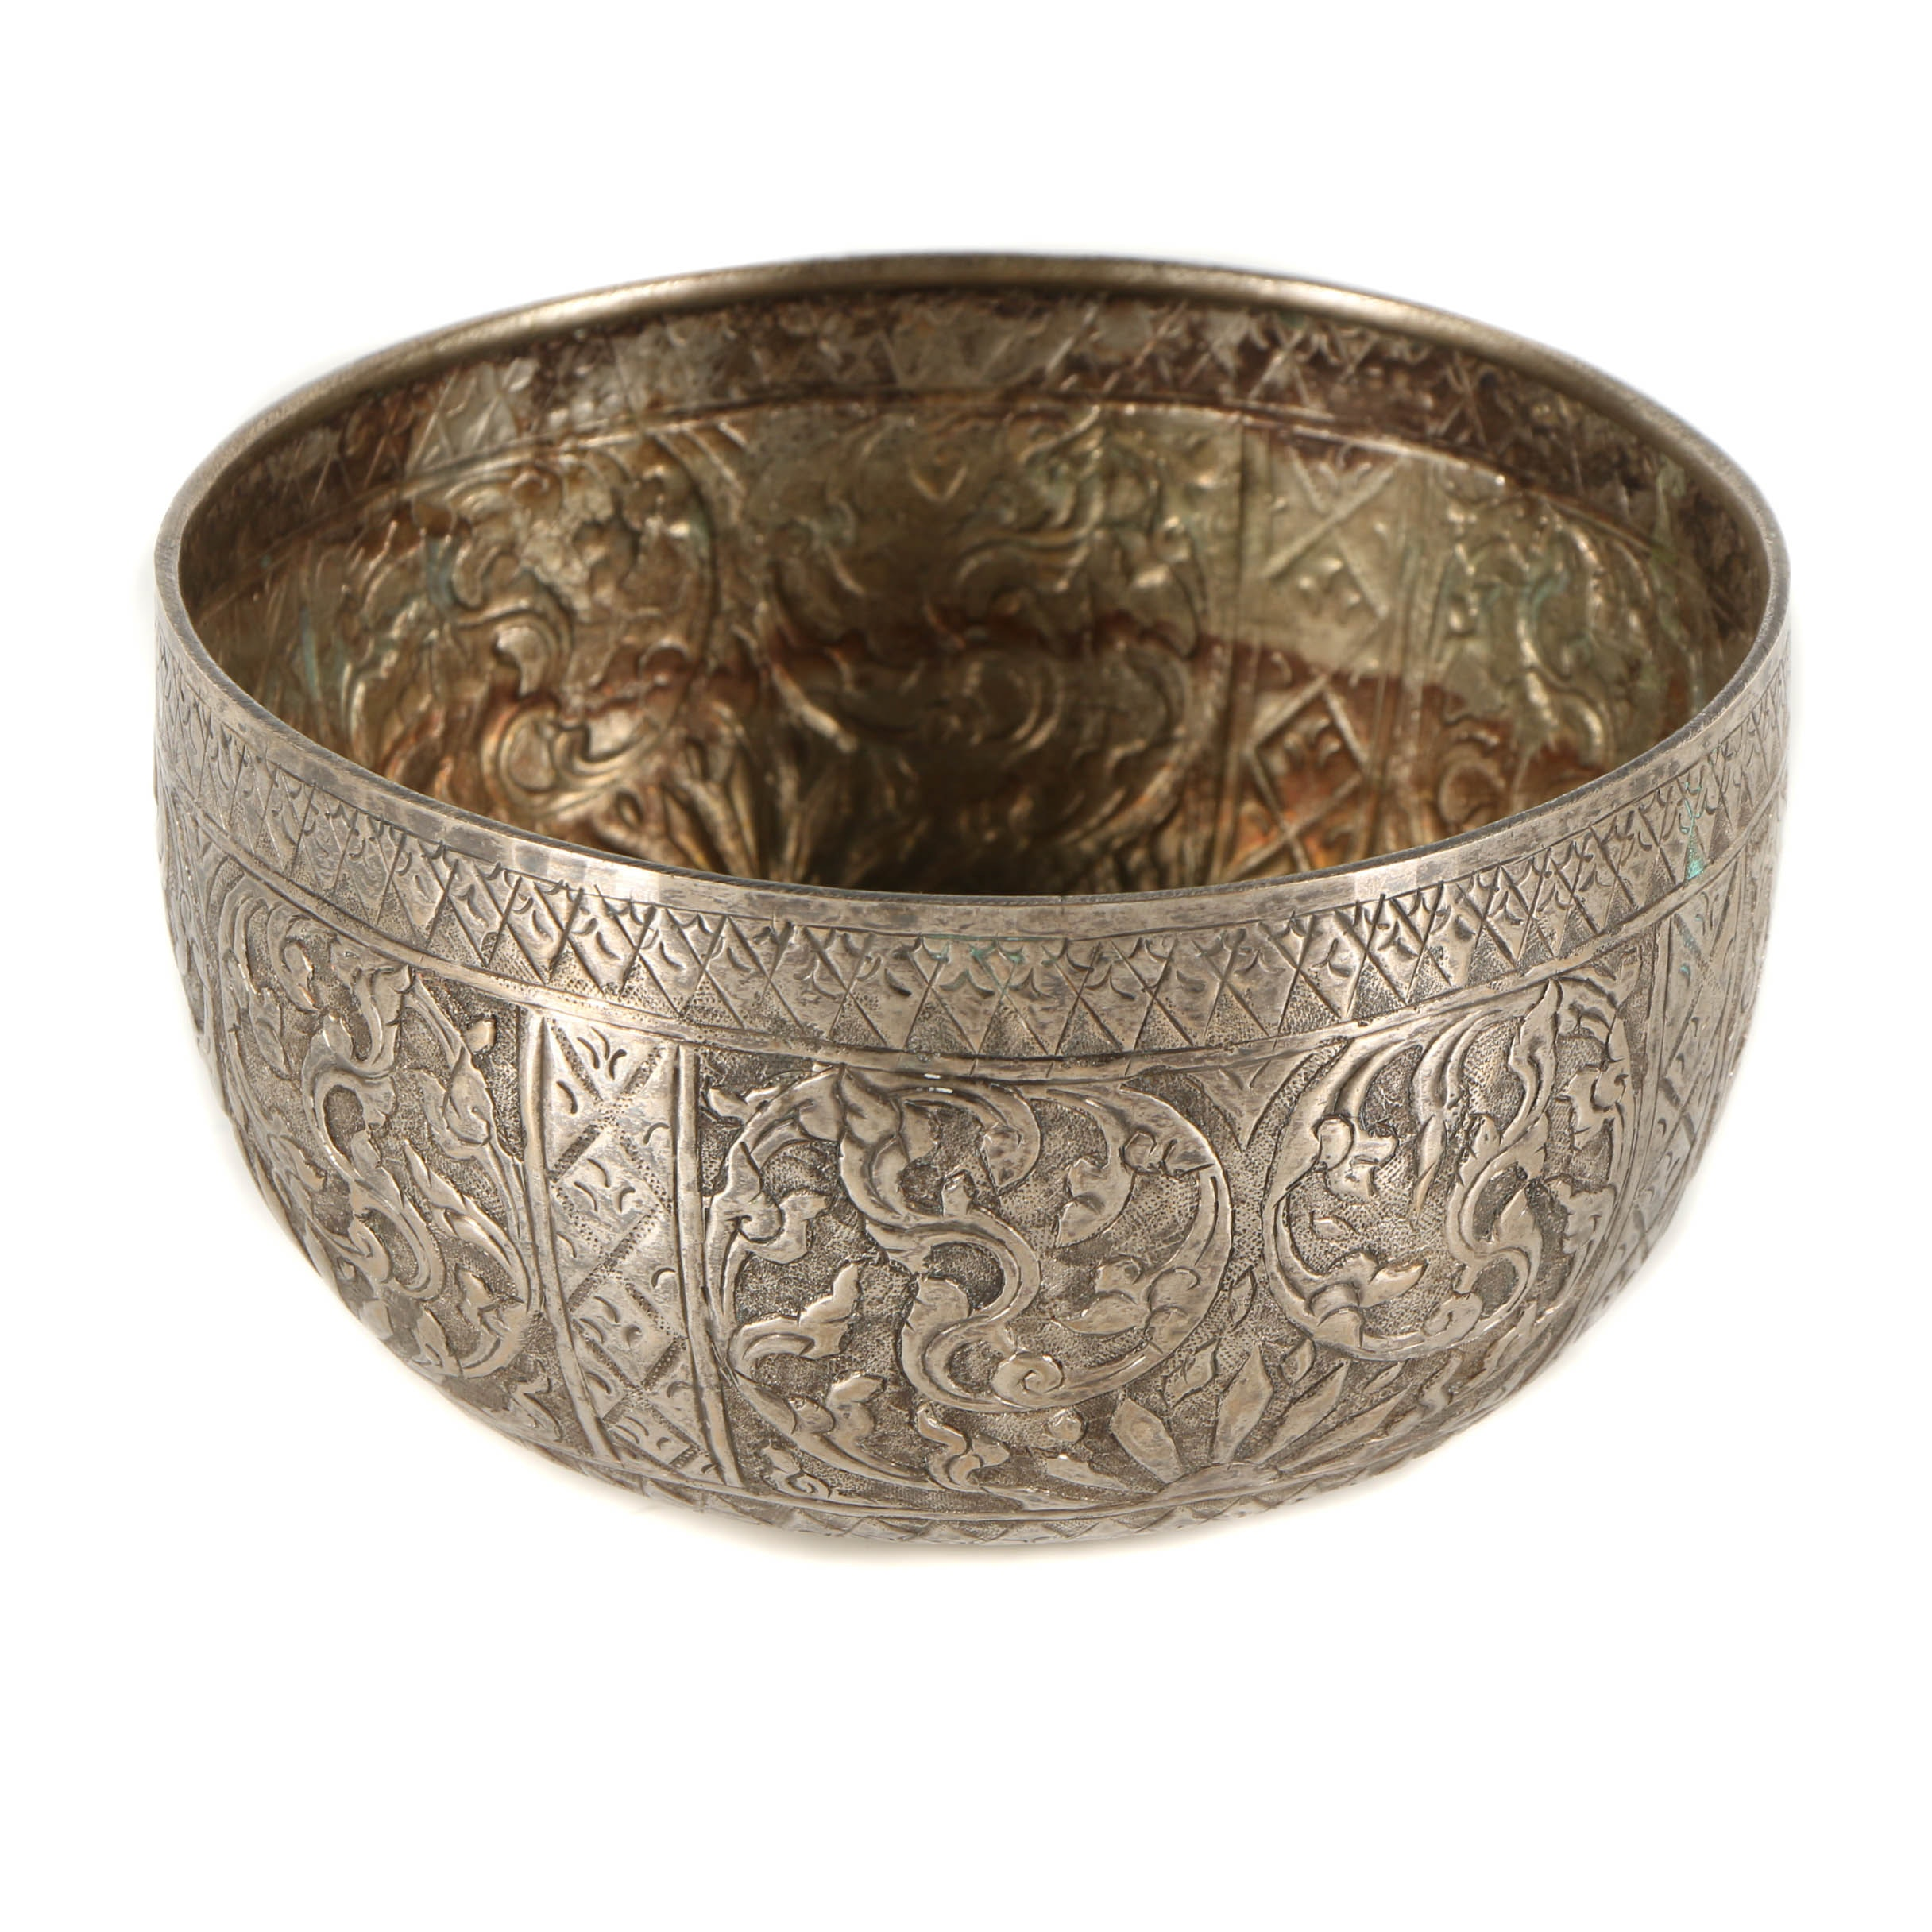 Chinese Silver Plated Decorative Bowl